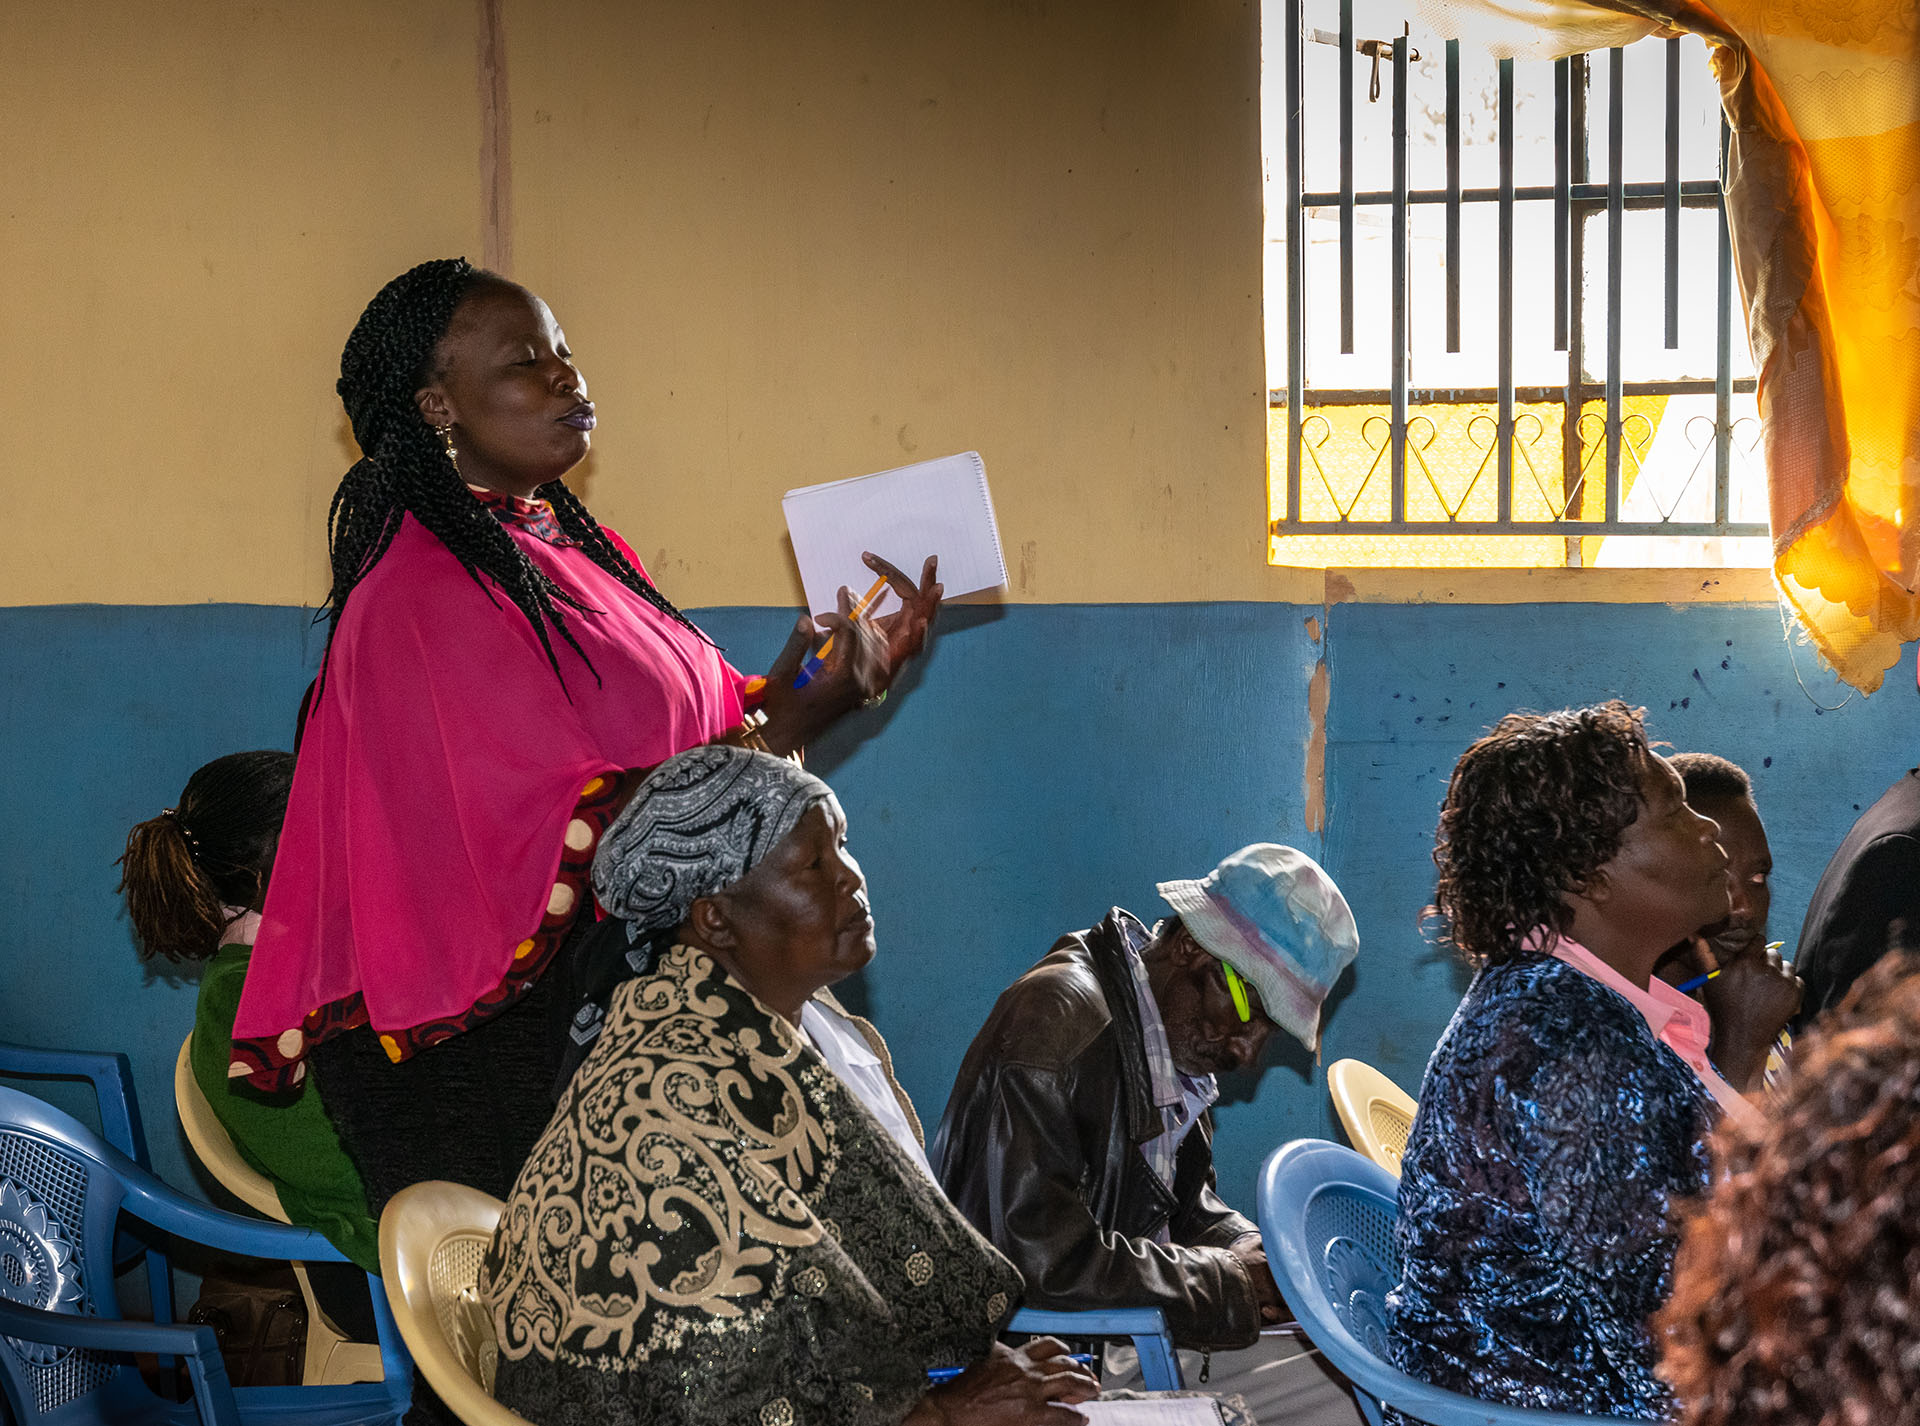 Hearing the perspectives of community health workers during the training on household air pollution